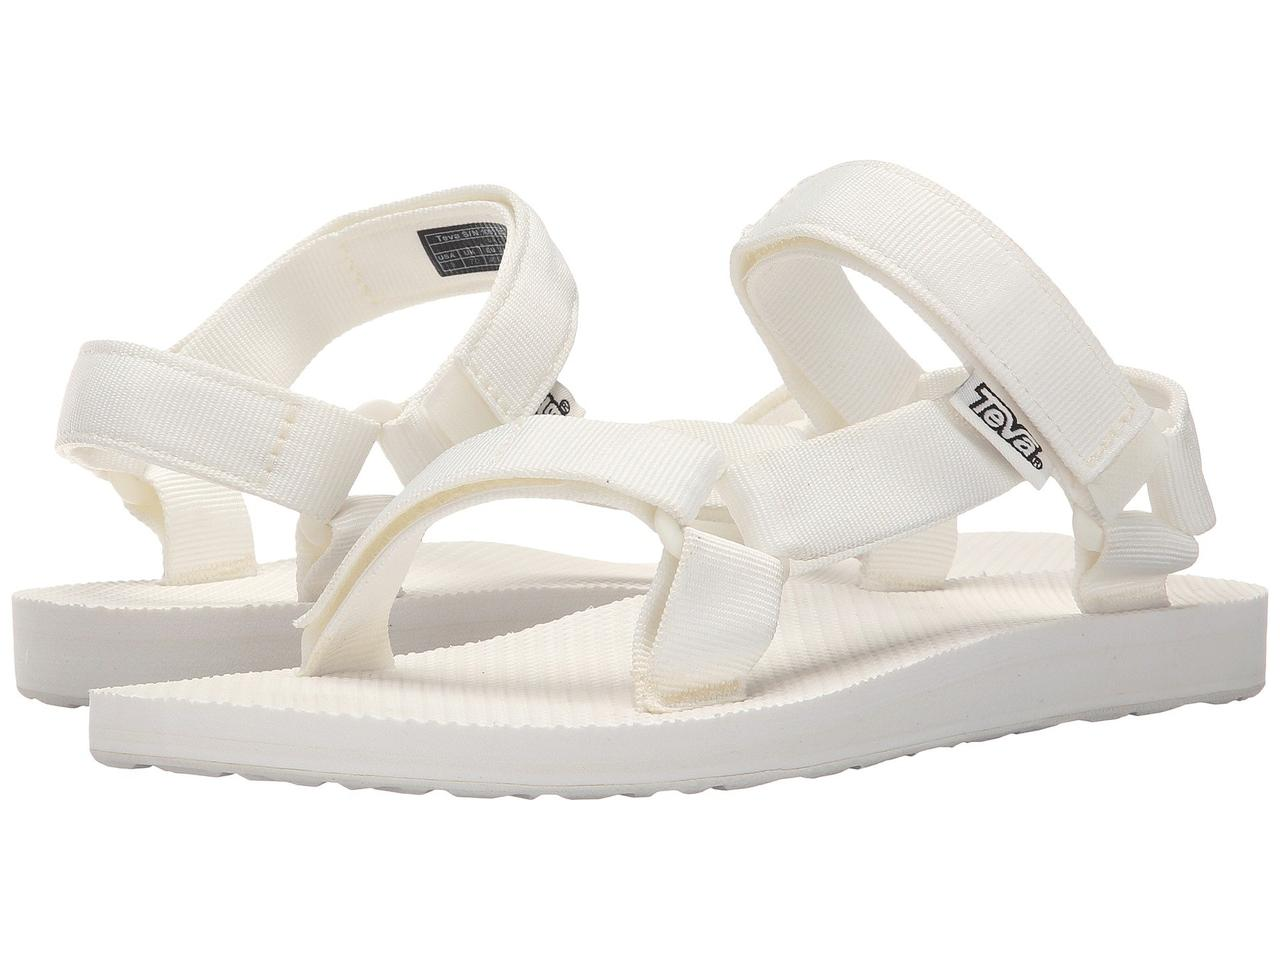 Сандали/Вьетнамки (Оригинал) Teva Original Universal Bright White